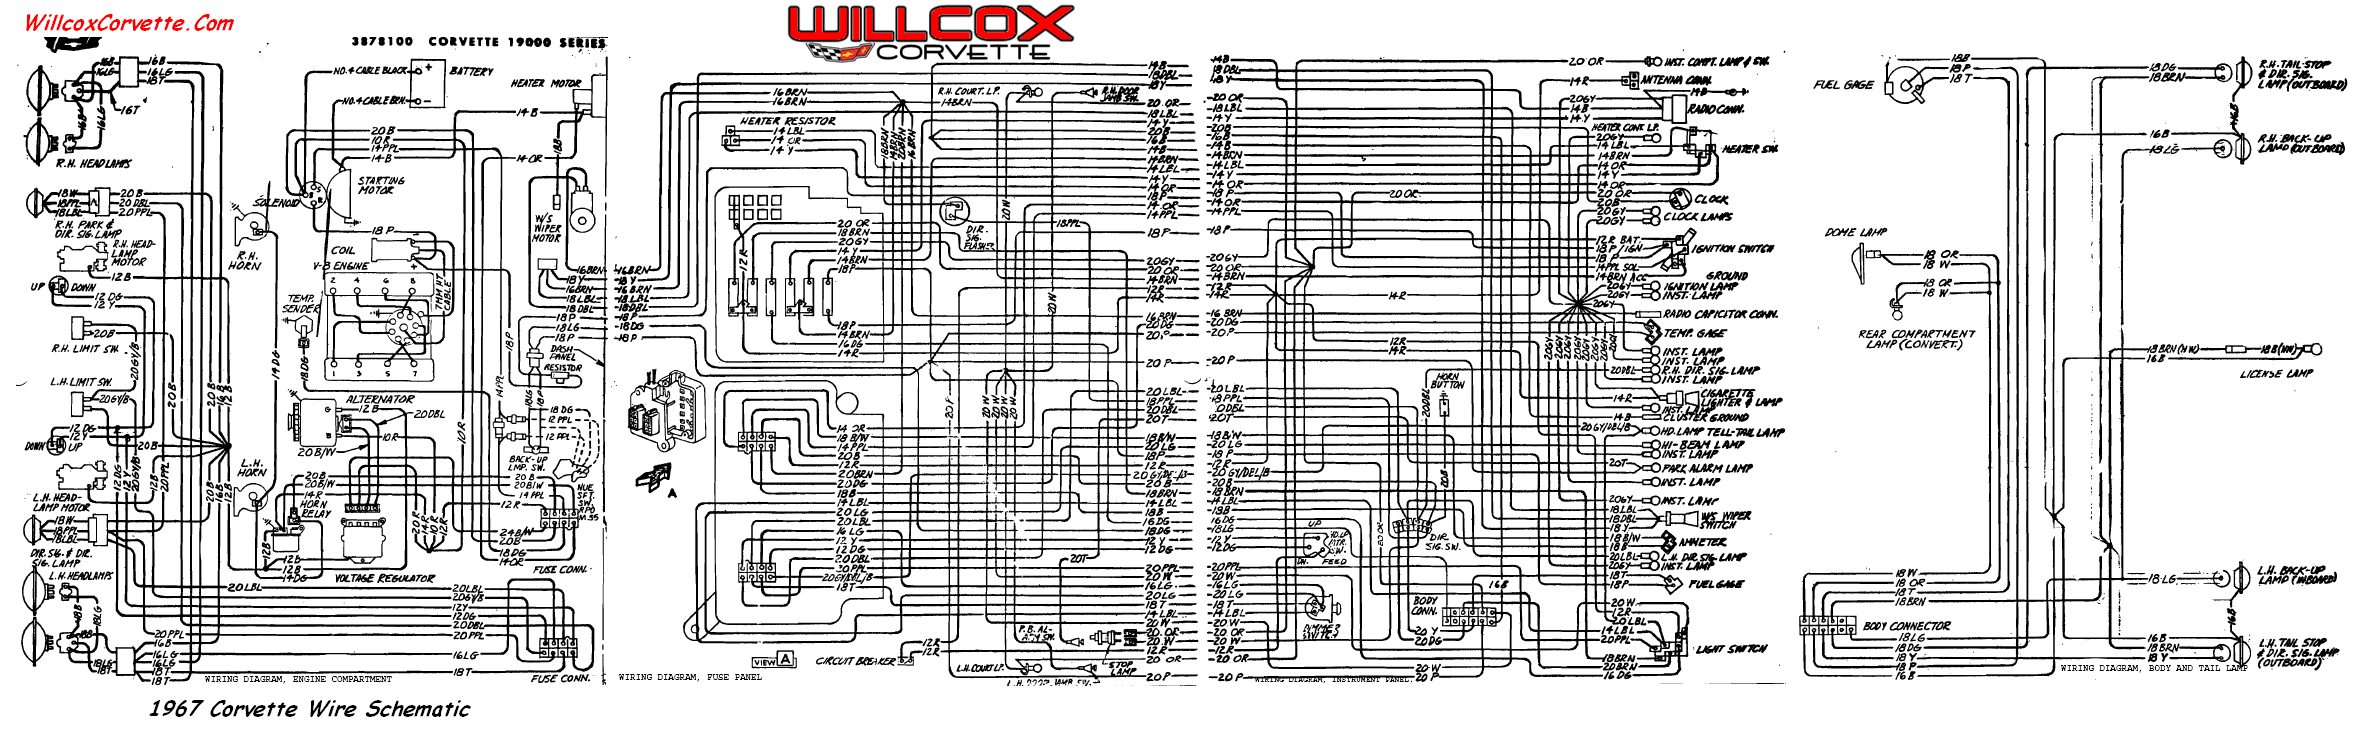 1967 corvette wiring diagram tracer schematic willcox corvette inc rh repairs willcoxcorvette com 1972 corvette wiring schematic 1984 corvette wiring schematic